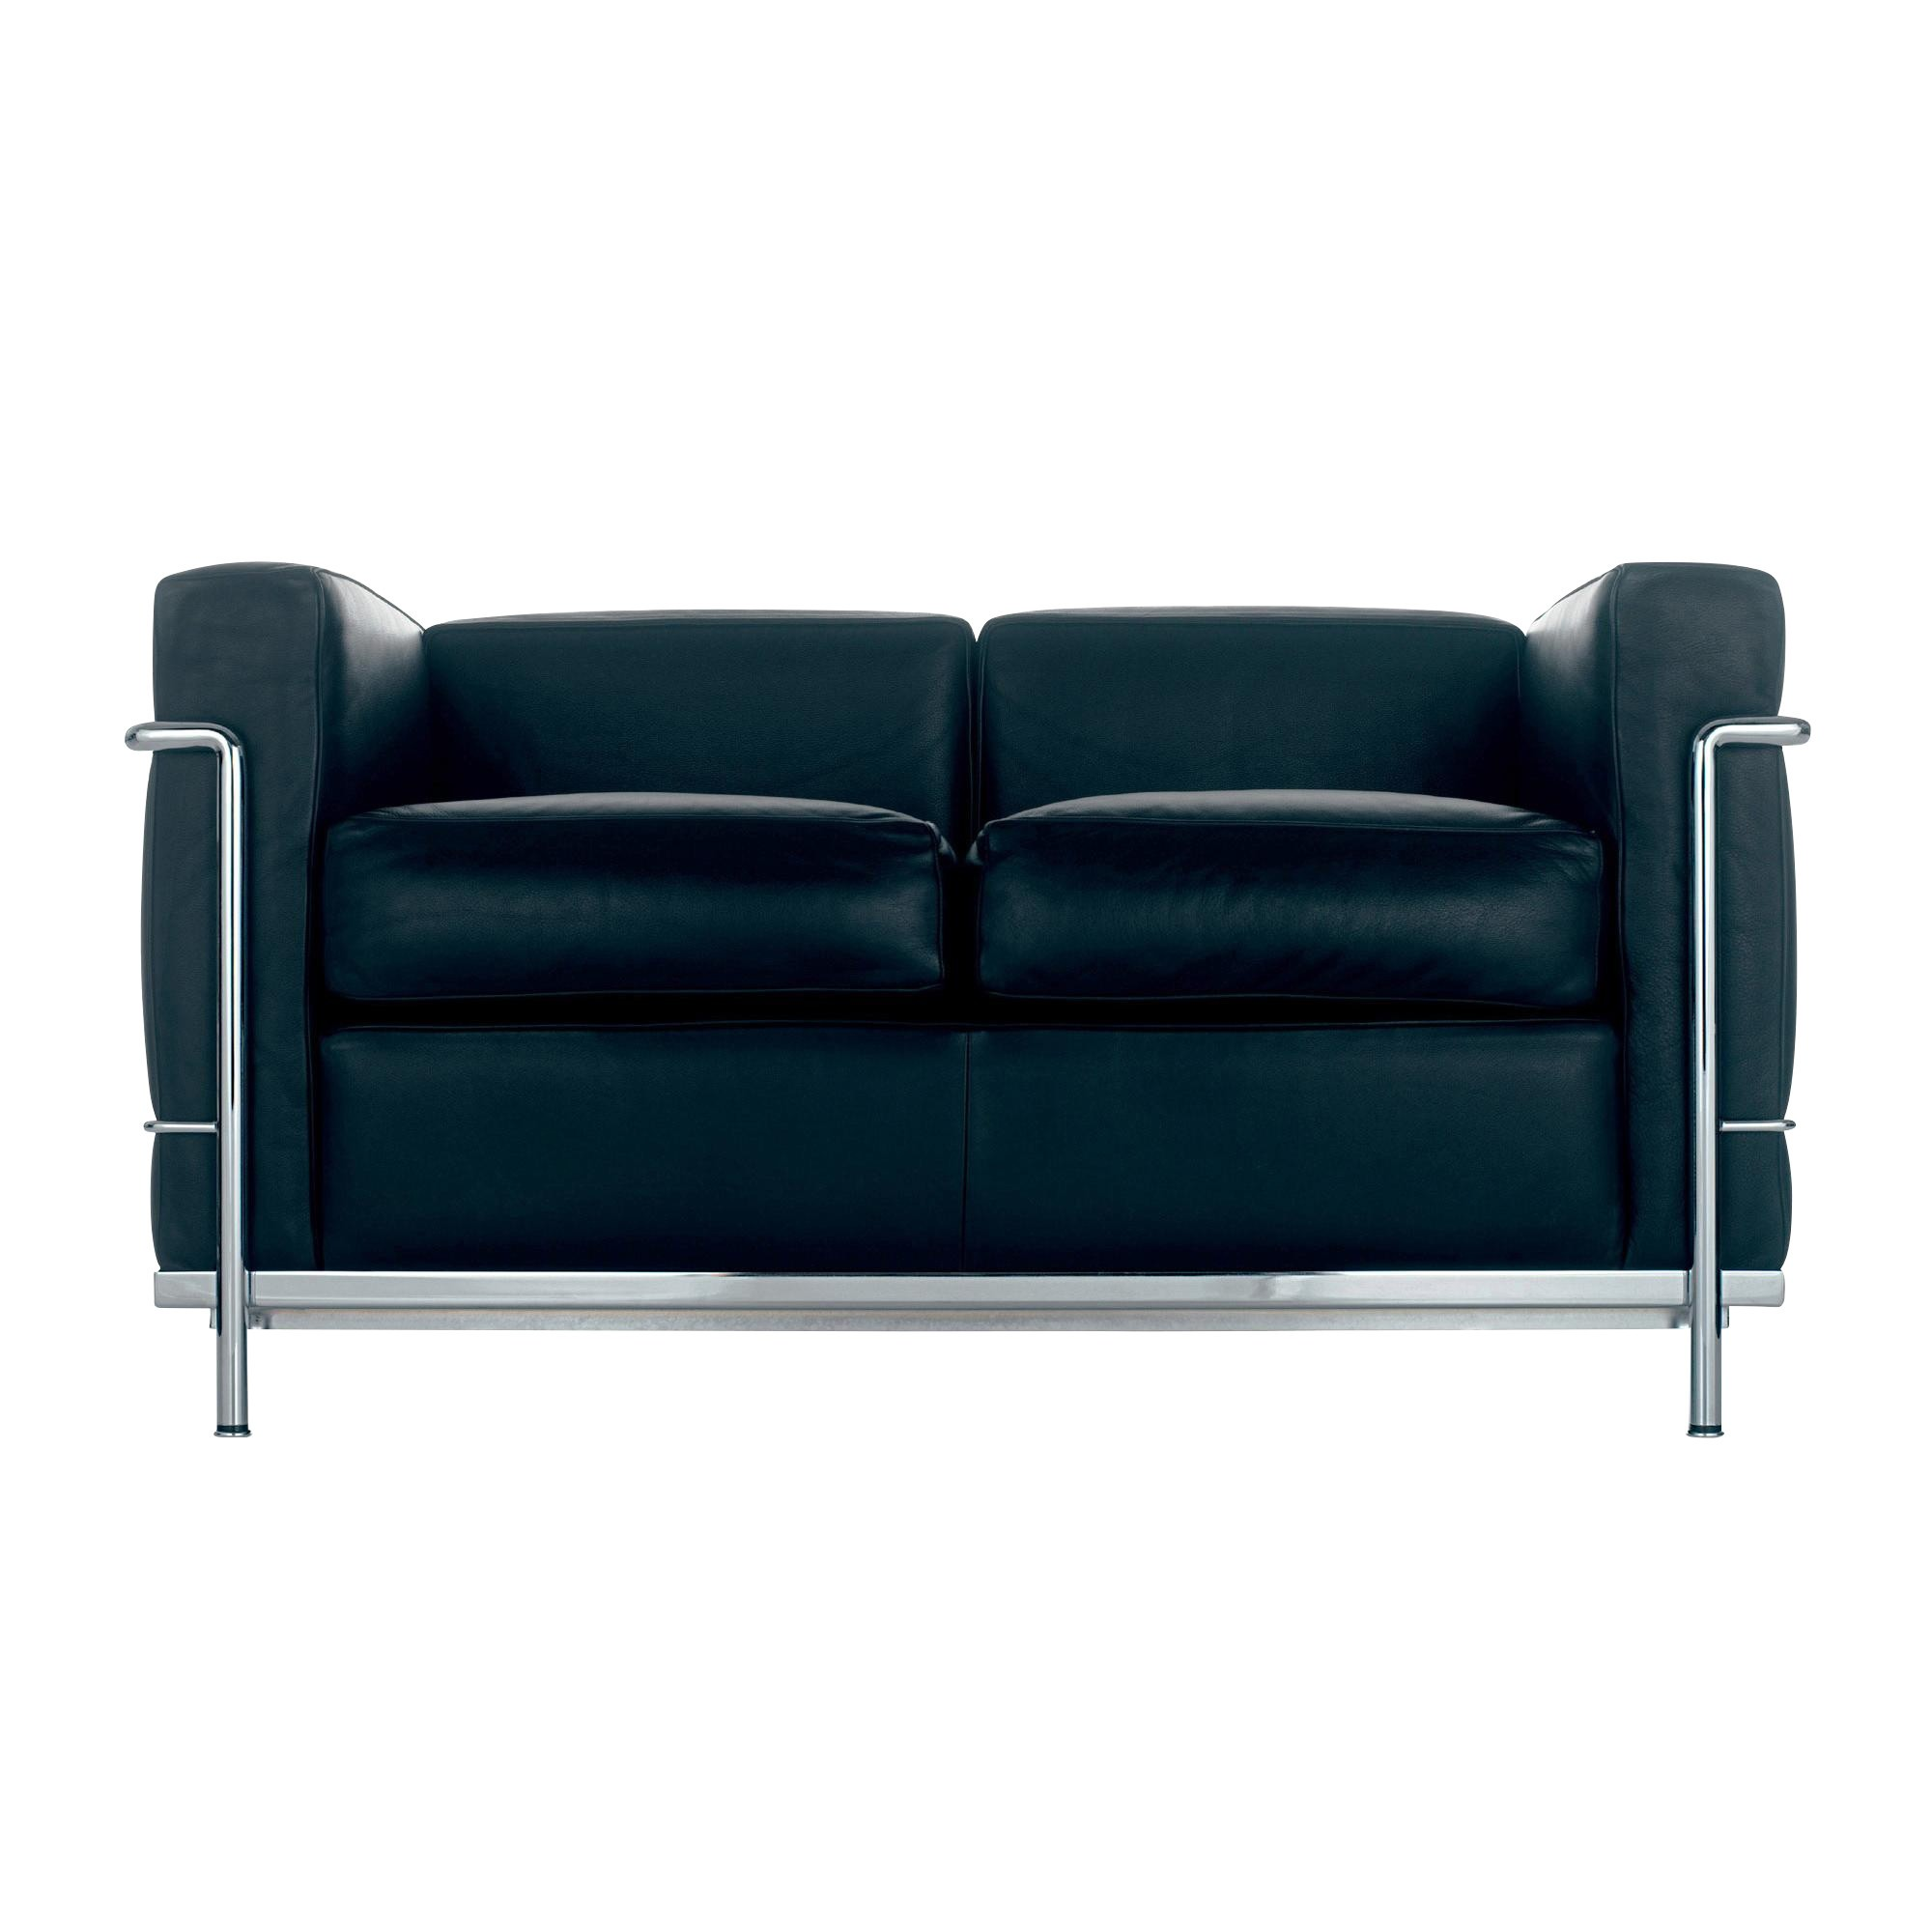 Canape Sofa Le Corbusier Lc2 Sofa Two Seater